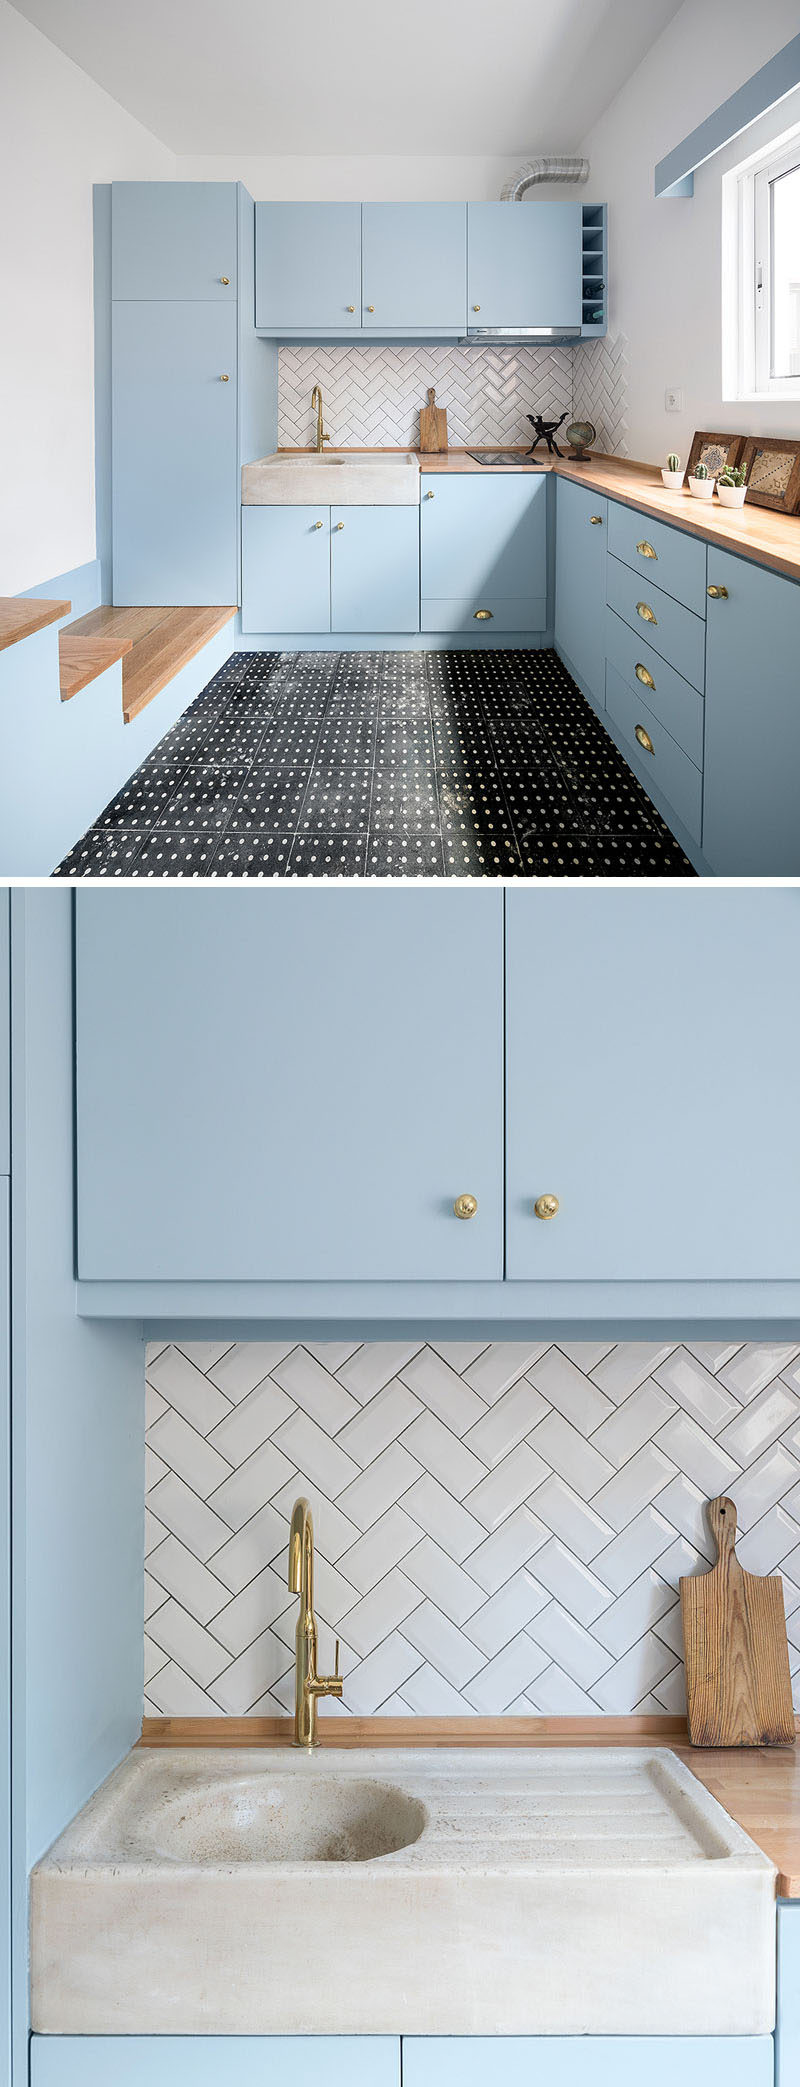 This small and modern kitchen features powder blue cabinets, a wood countertop, and white subway tiles in a herringbone pattern. #Kitchen #BlueKitchen #ModernKitchen